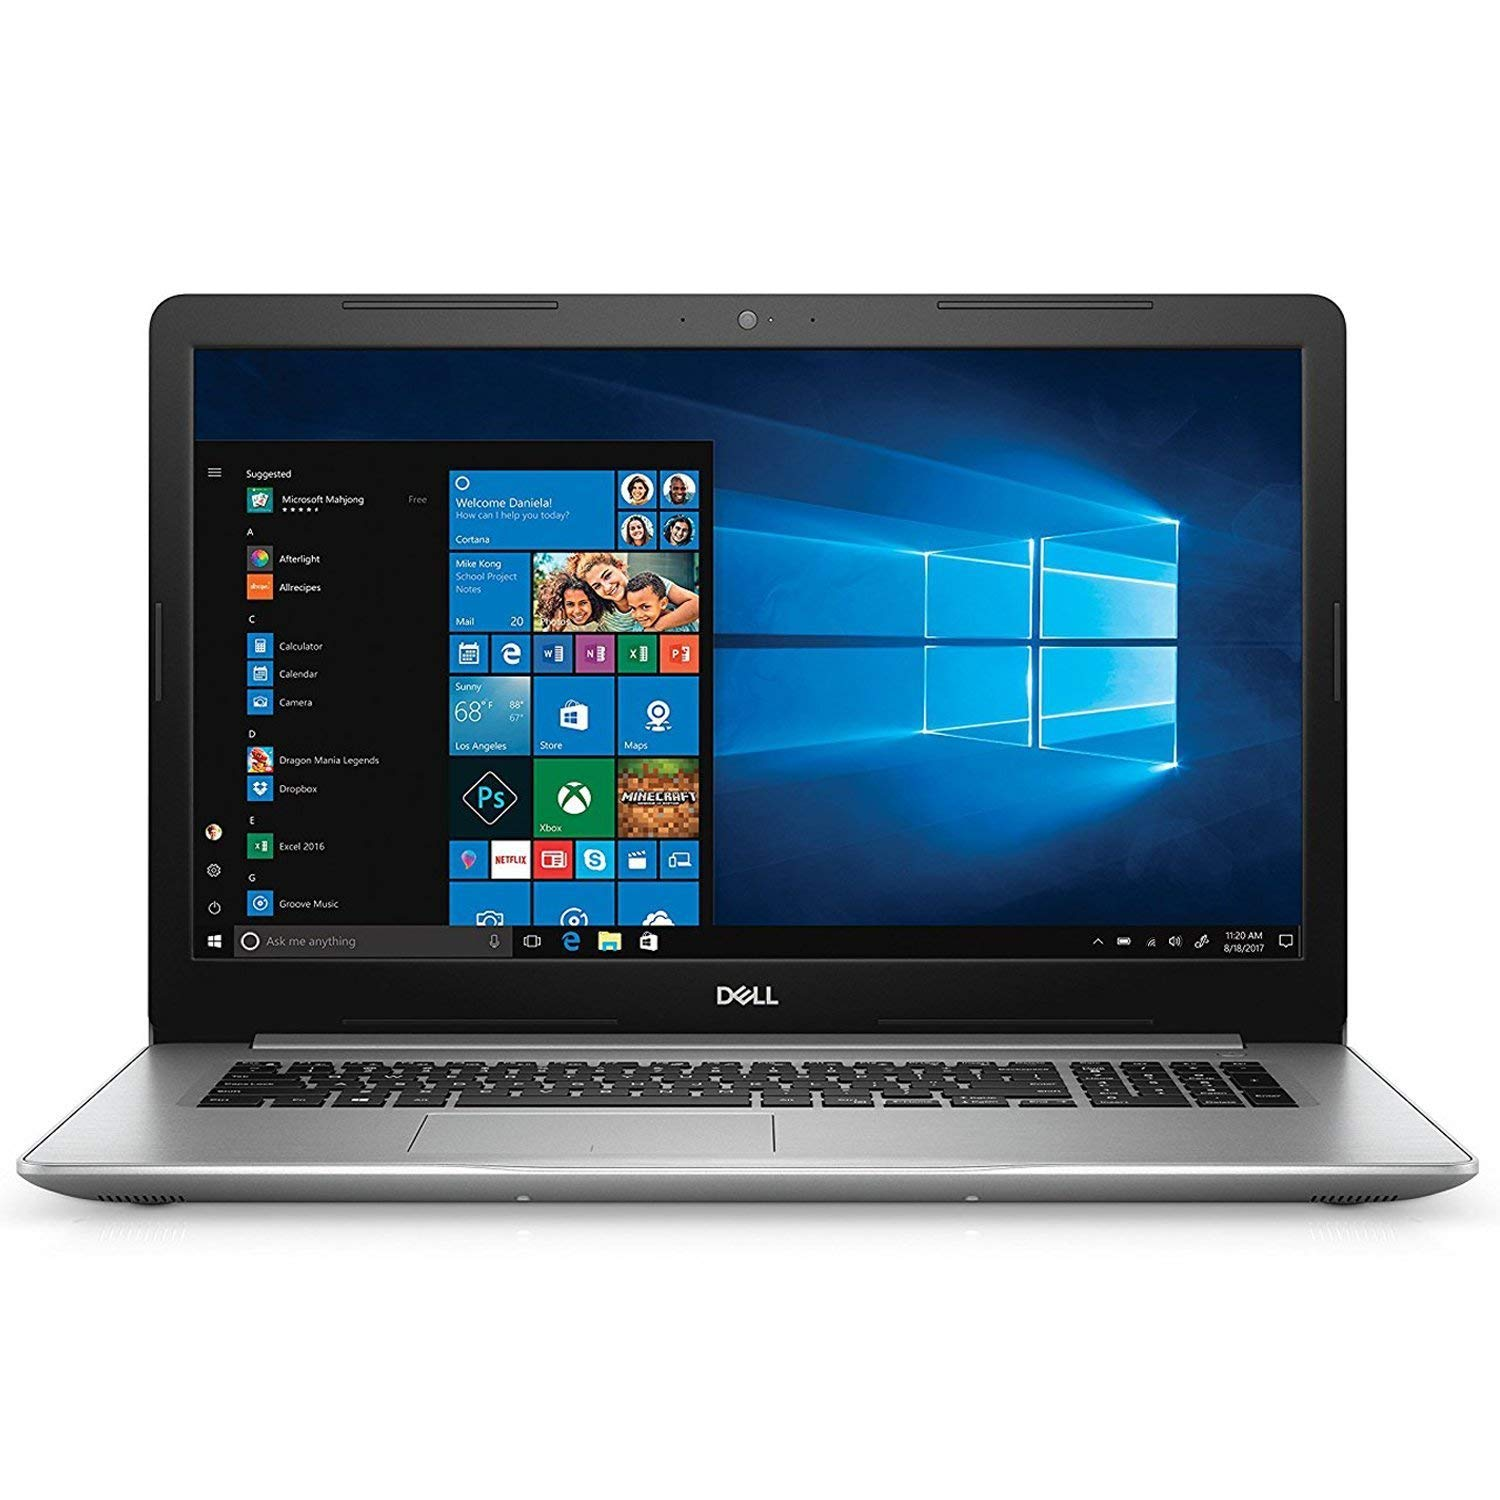 Dell Inspiron 17 | Laptops For a Programmer